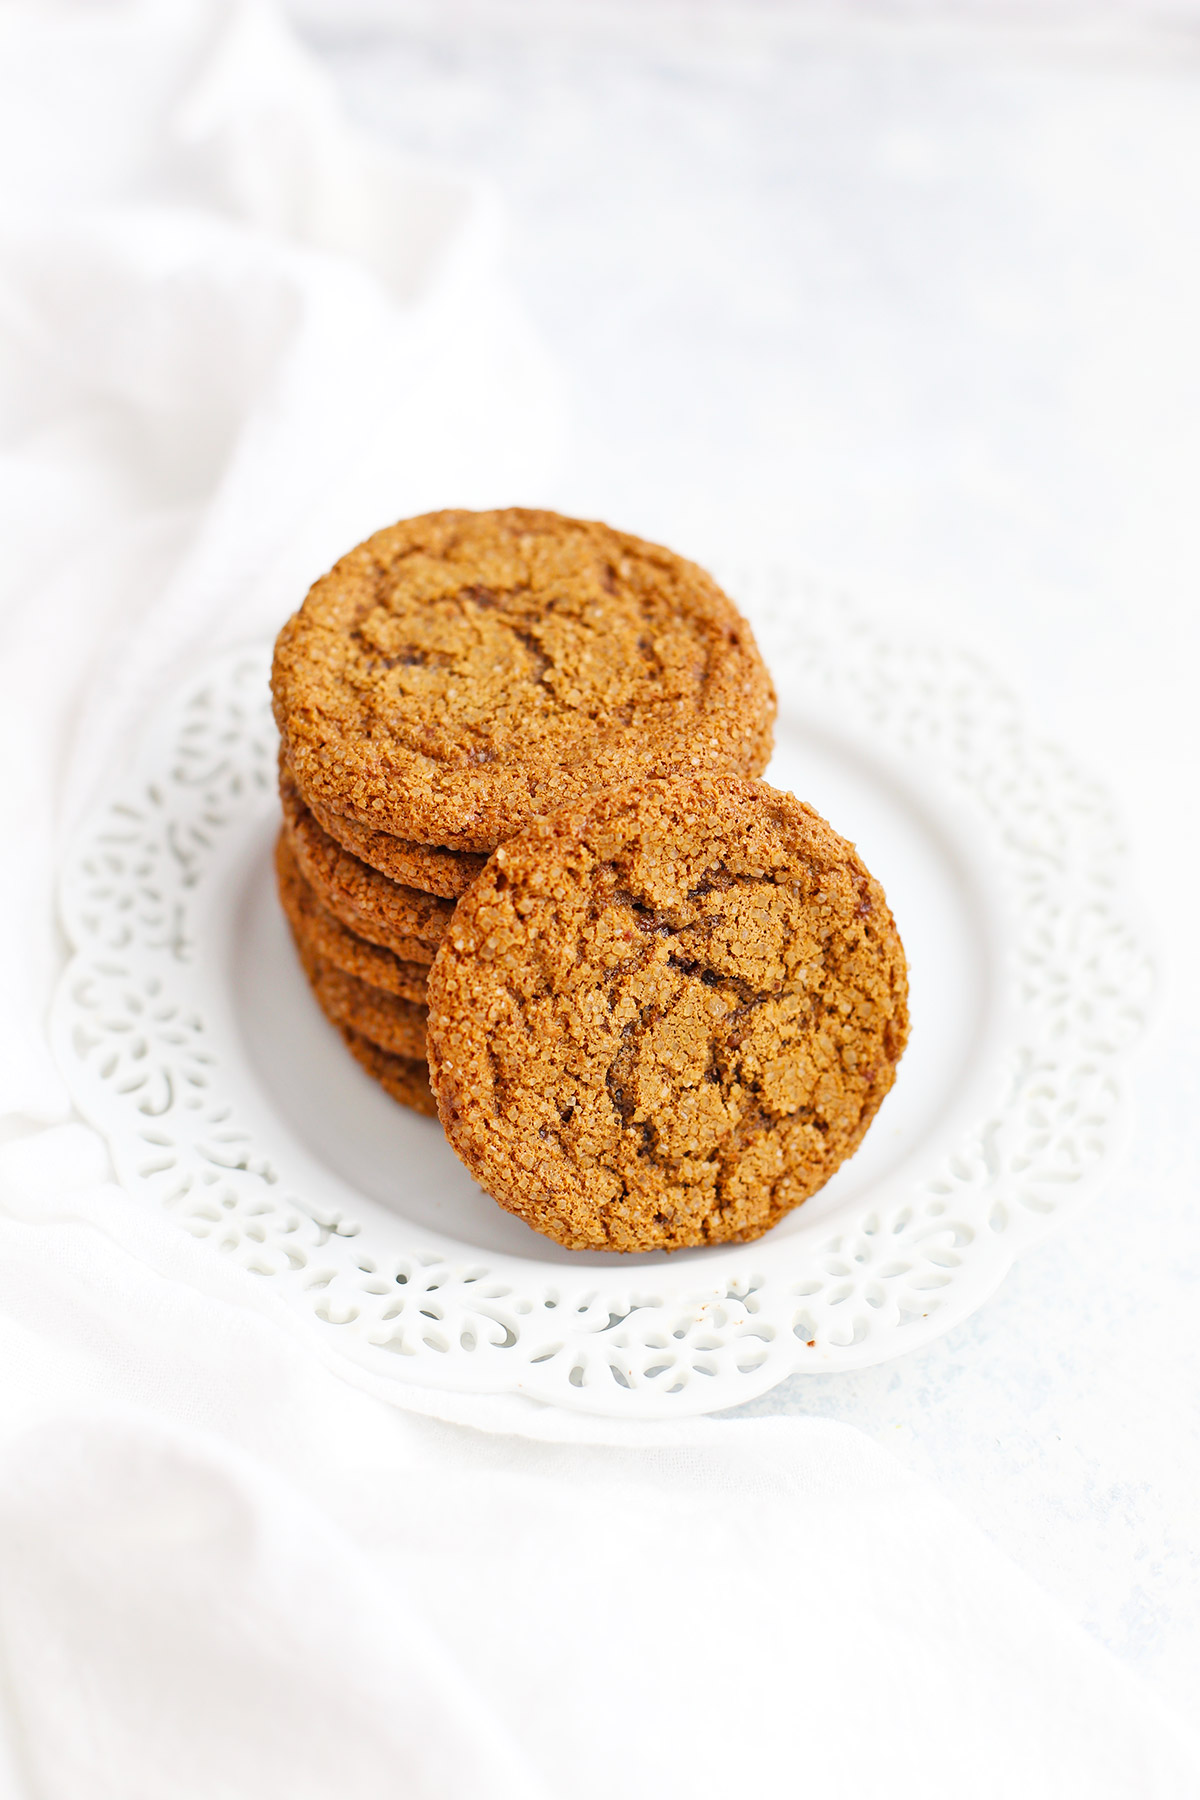 Paleo ginger cookies on a white snowflake plate from One Lovely Life